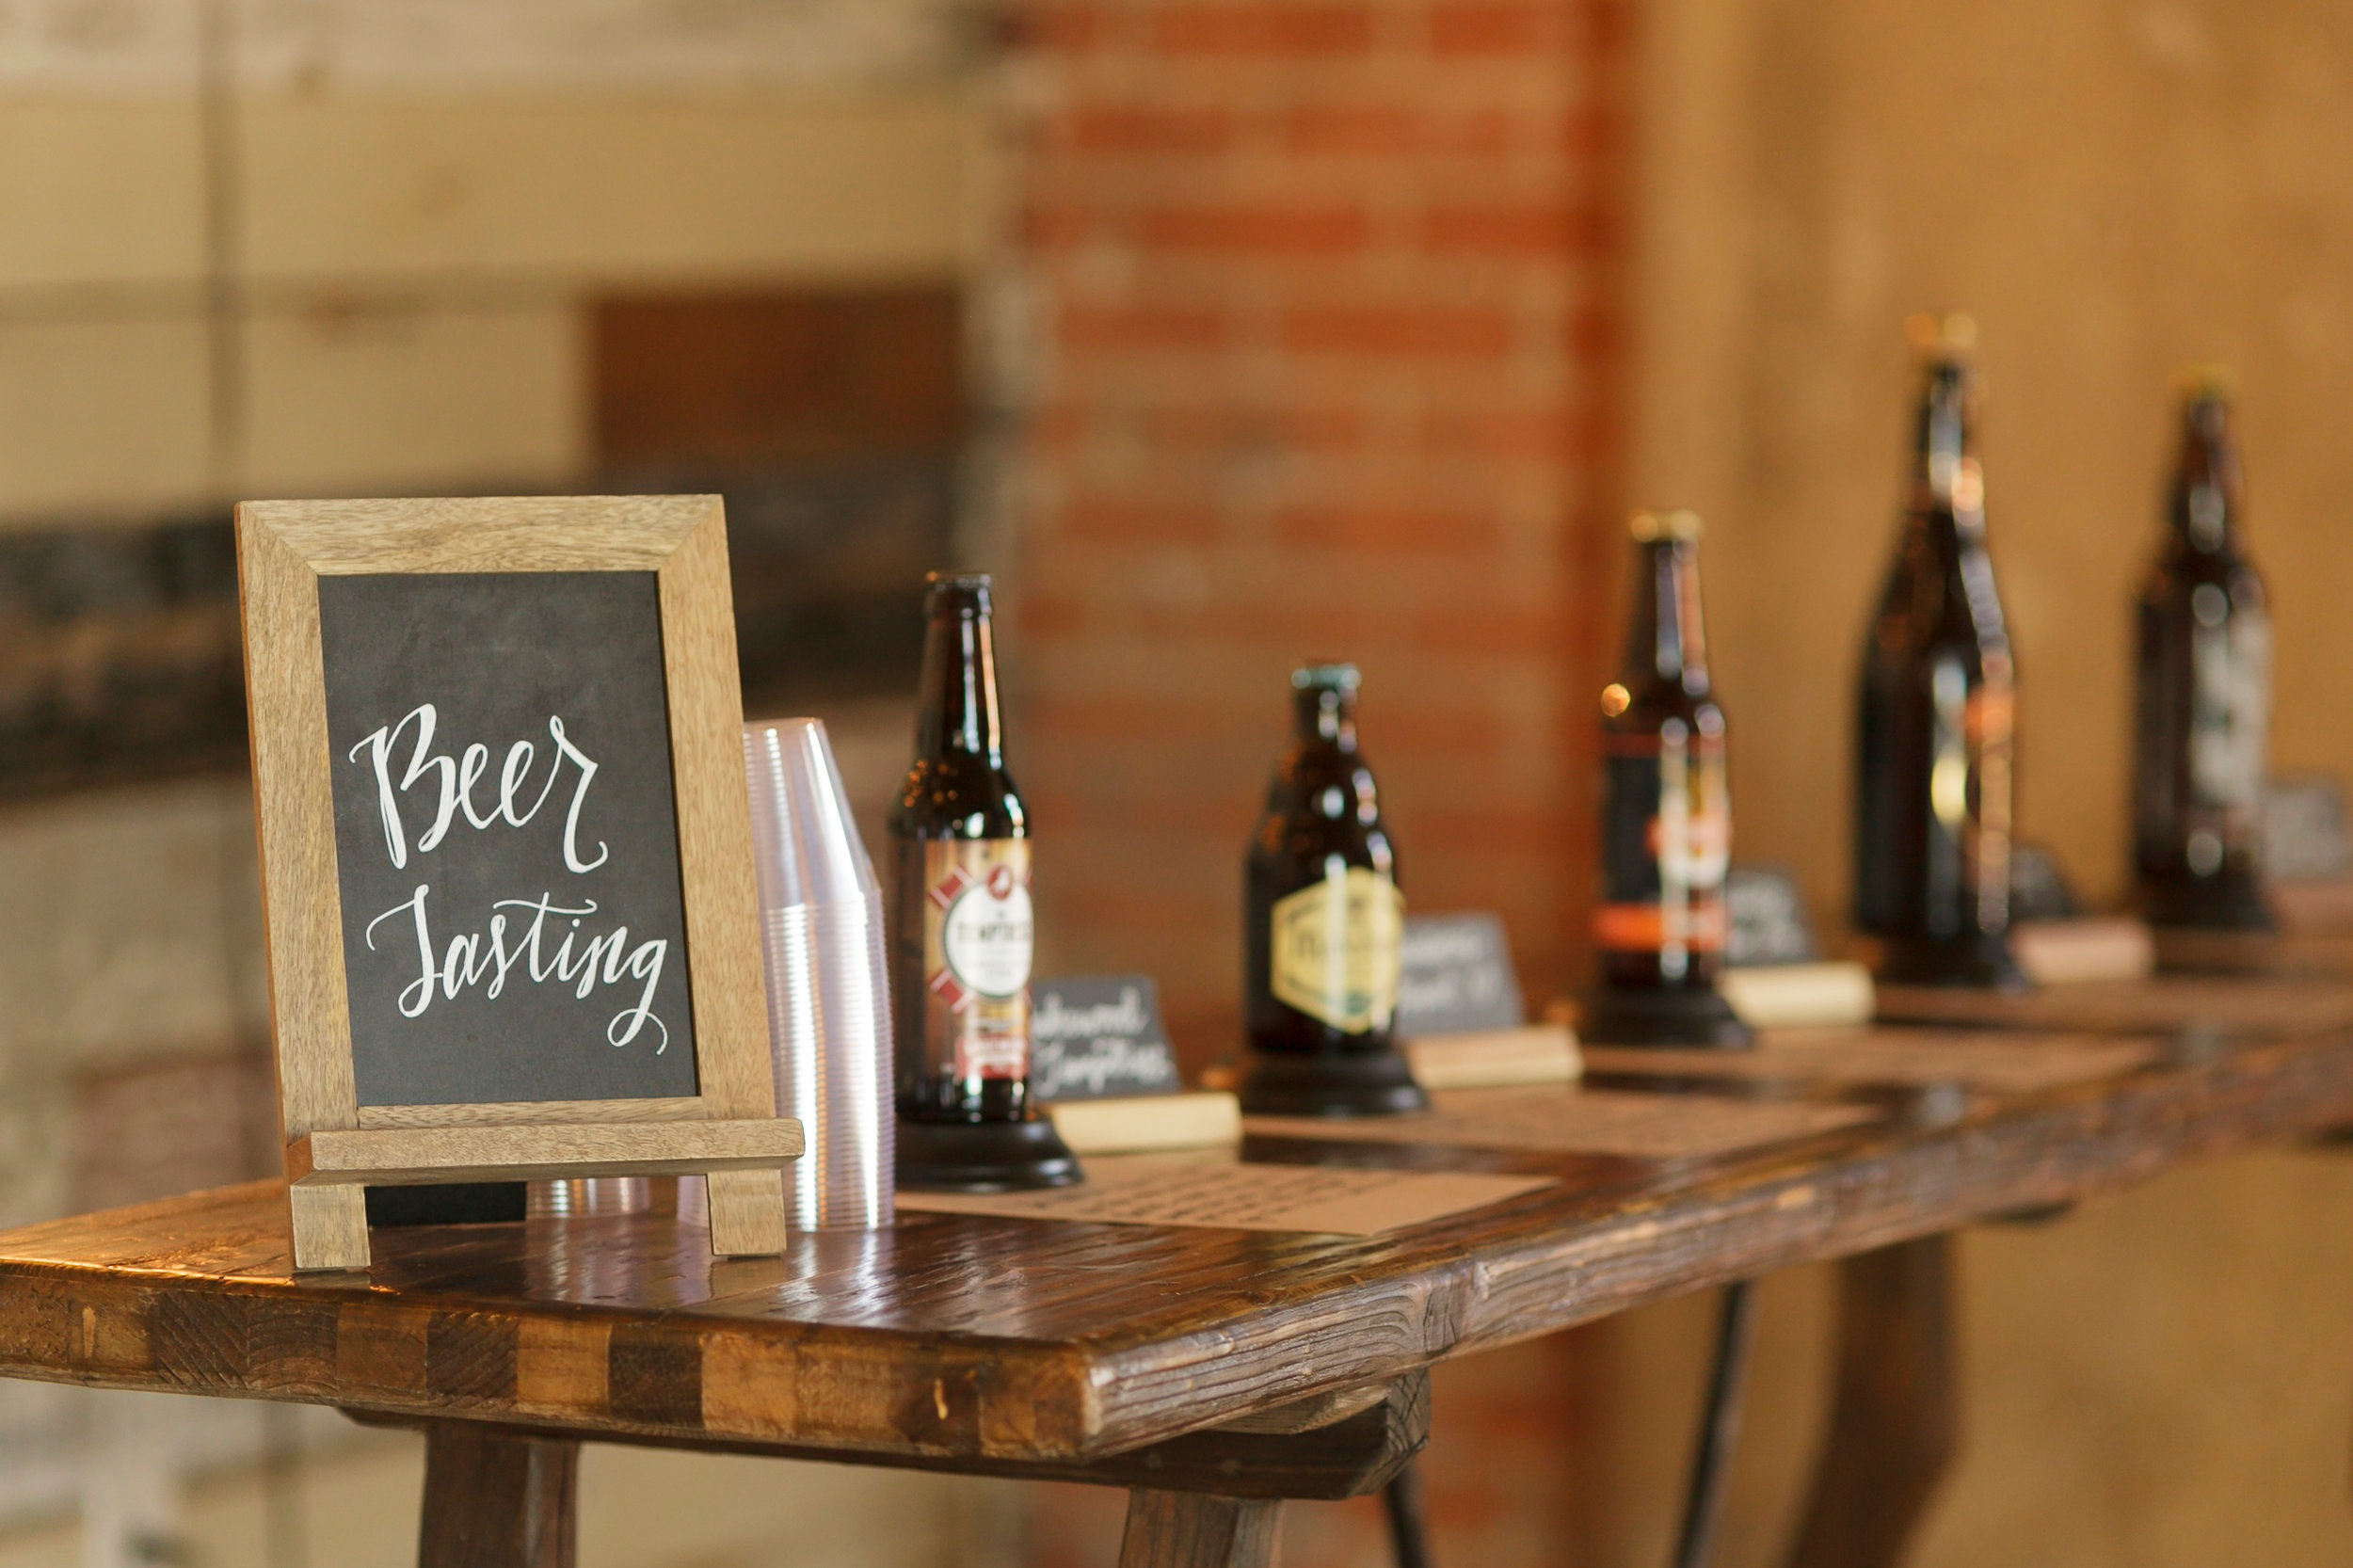 BEER TASTING BAR - variety of beer styles, rentals, expert cicerone (beer connoisseur)starting at $21 per person